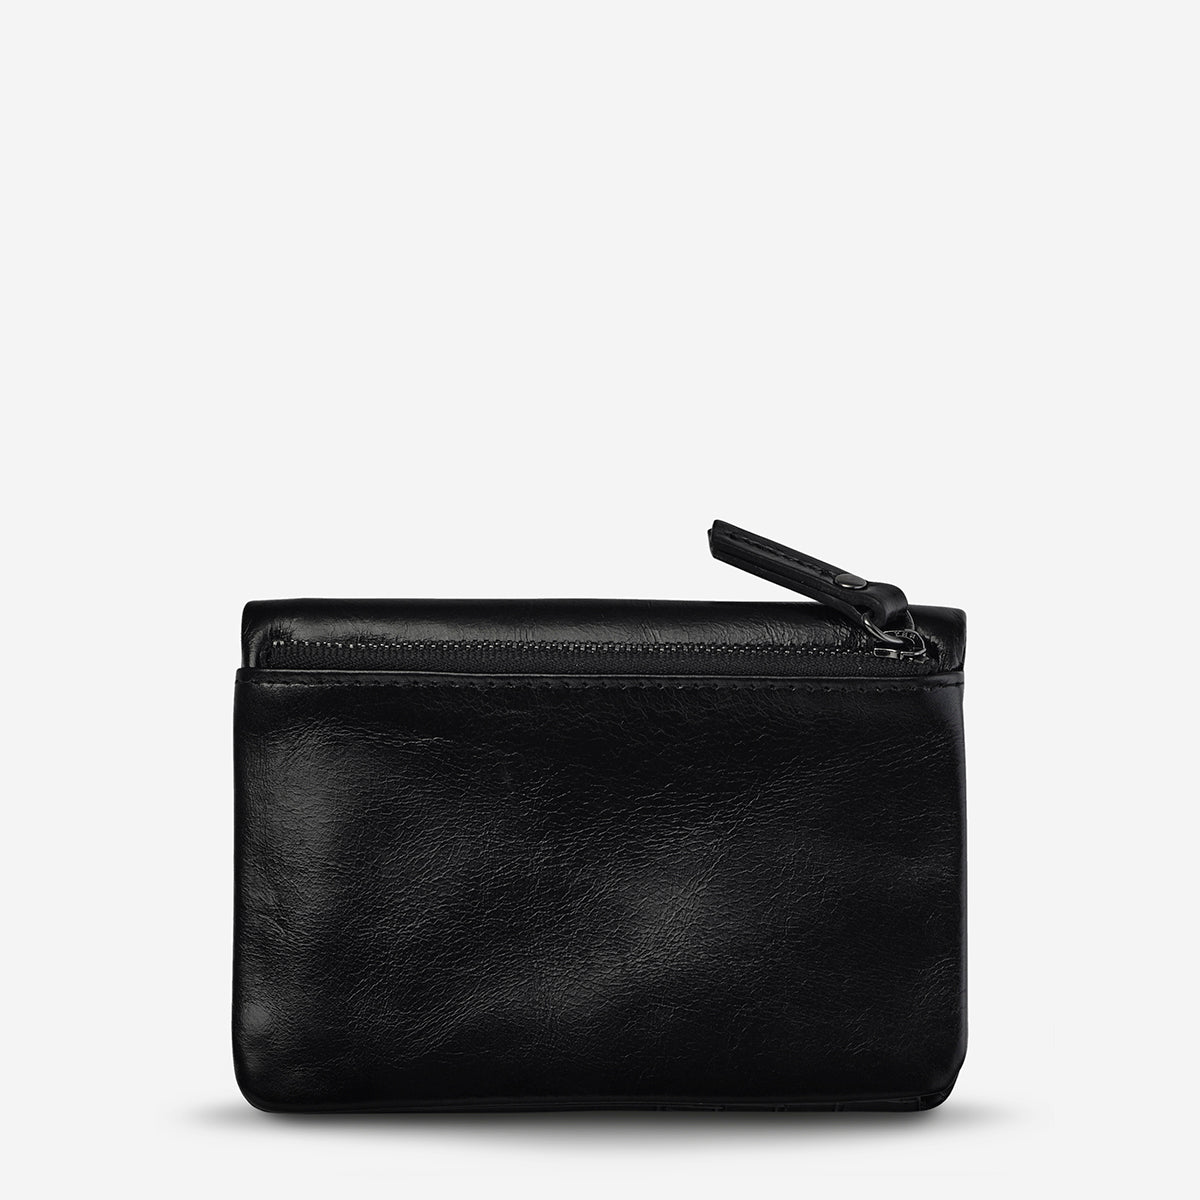 Status Anxiety Is Now Better Women's Leather Wallet Black